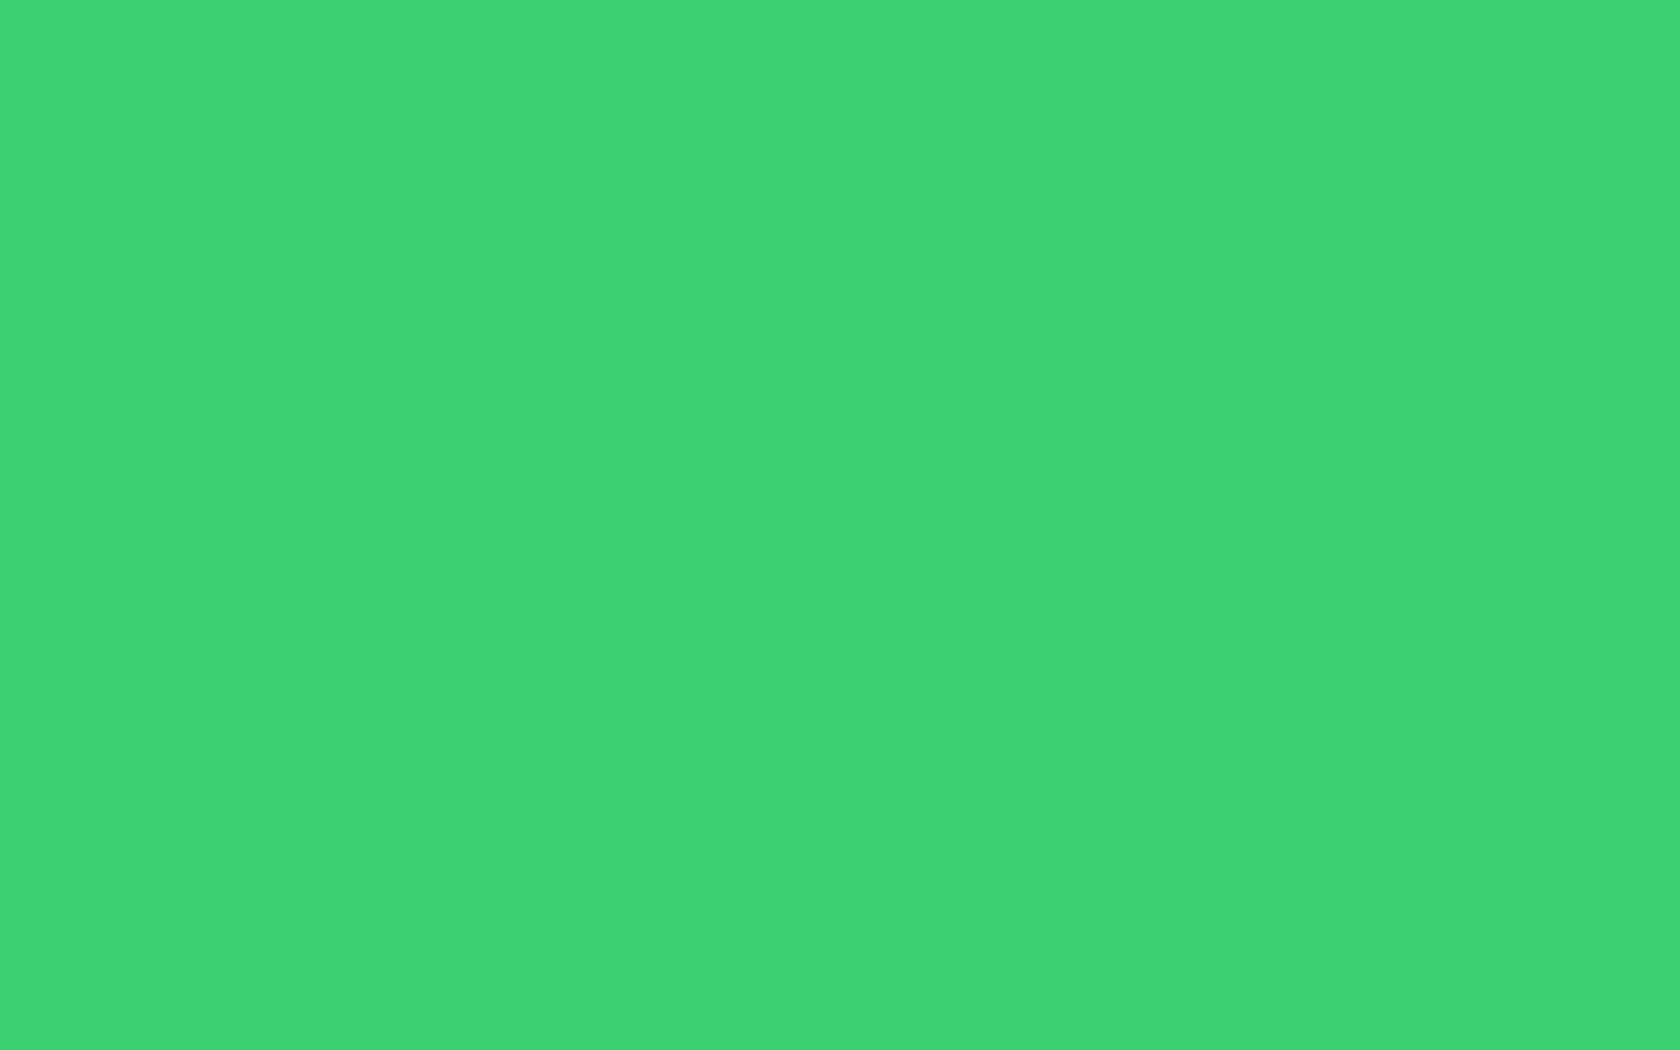 1680x1050 UFO Green Solid Color Background